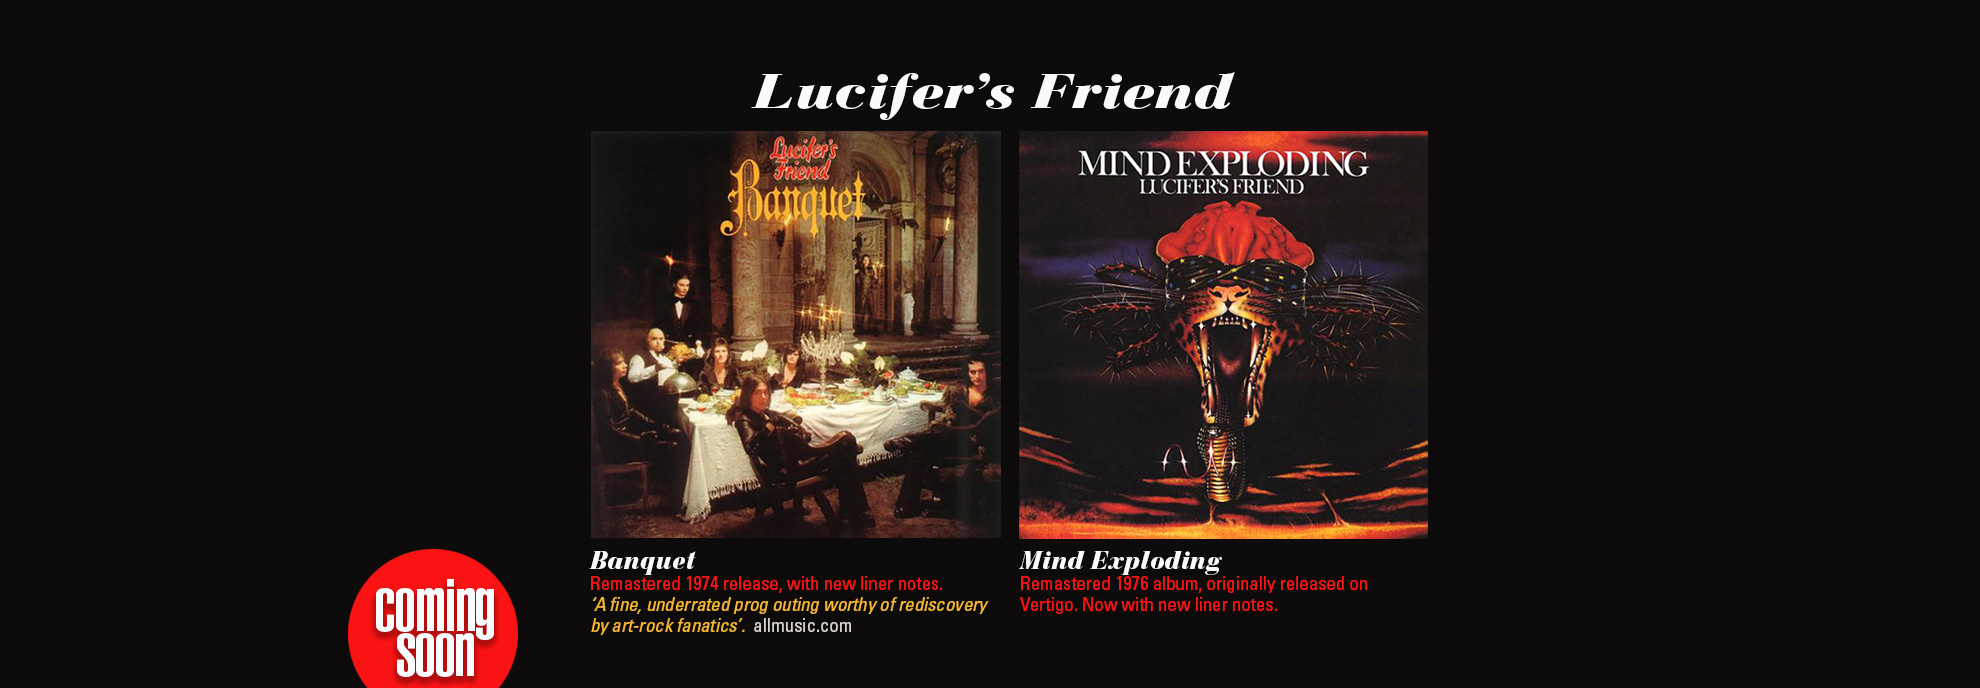 LUCIFERS-FRIEND-Banquet_Mind-Exploding